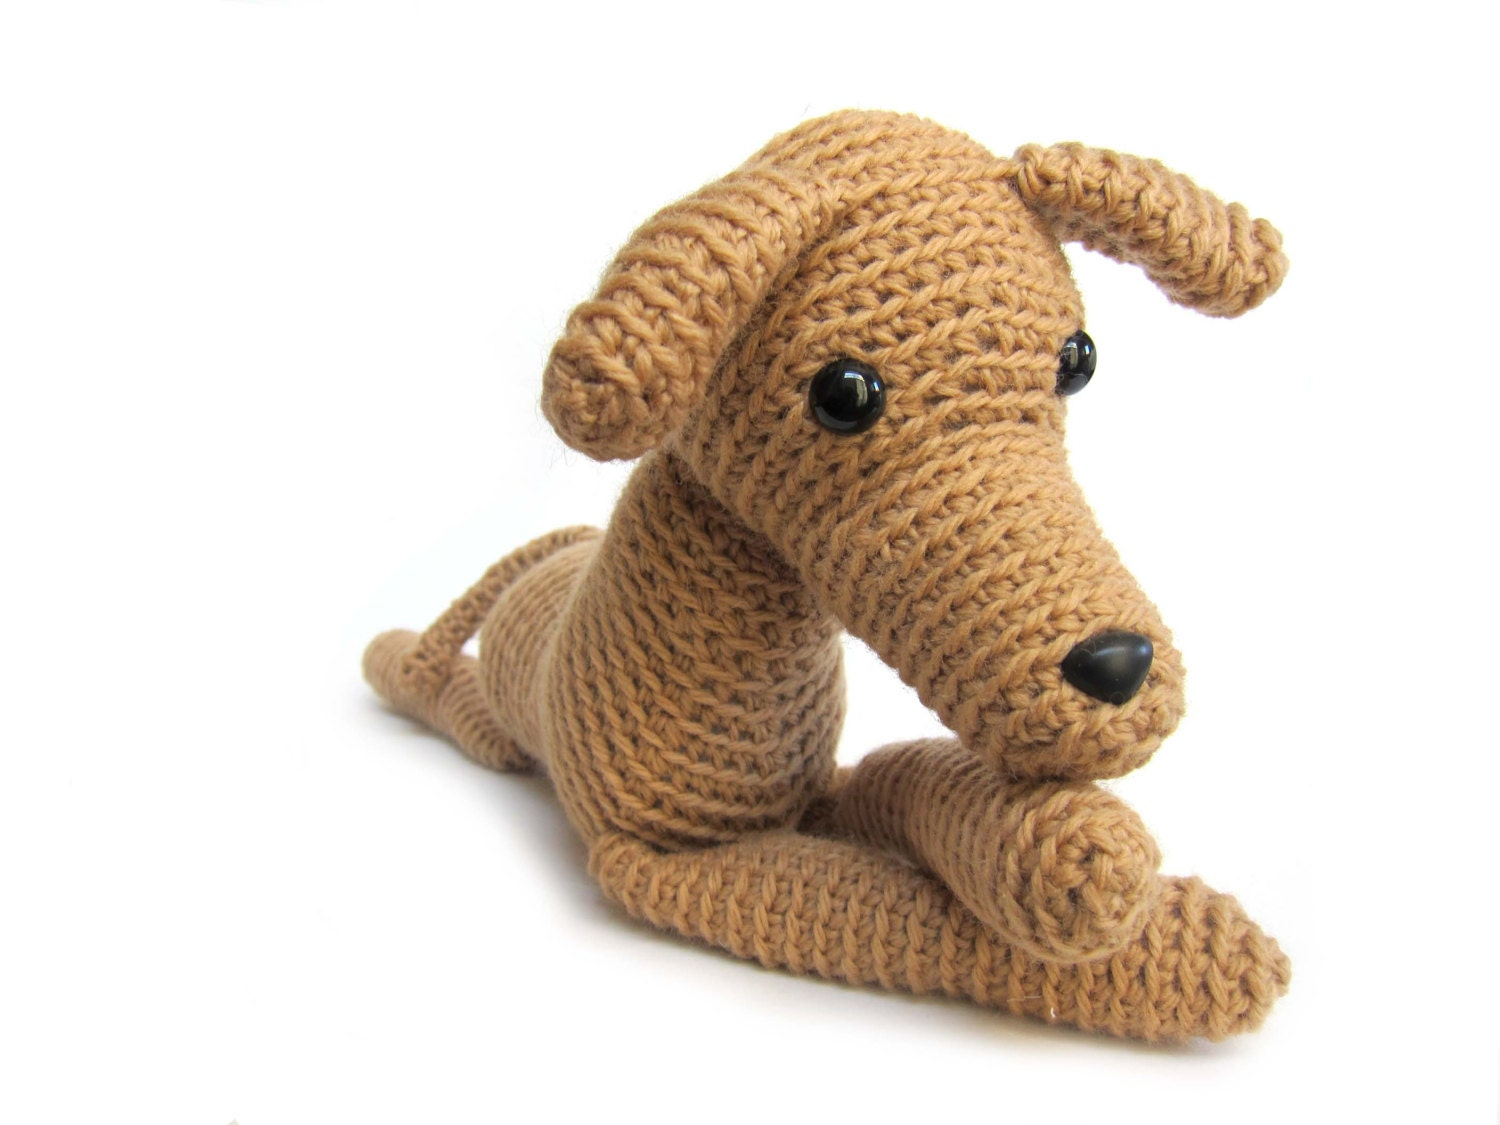 Crochet greyhound: plush amigurumi toy by FreshStitches on ...